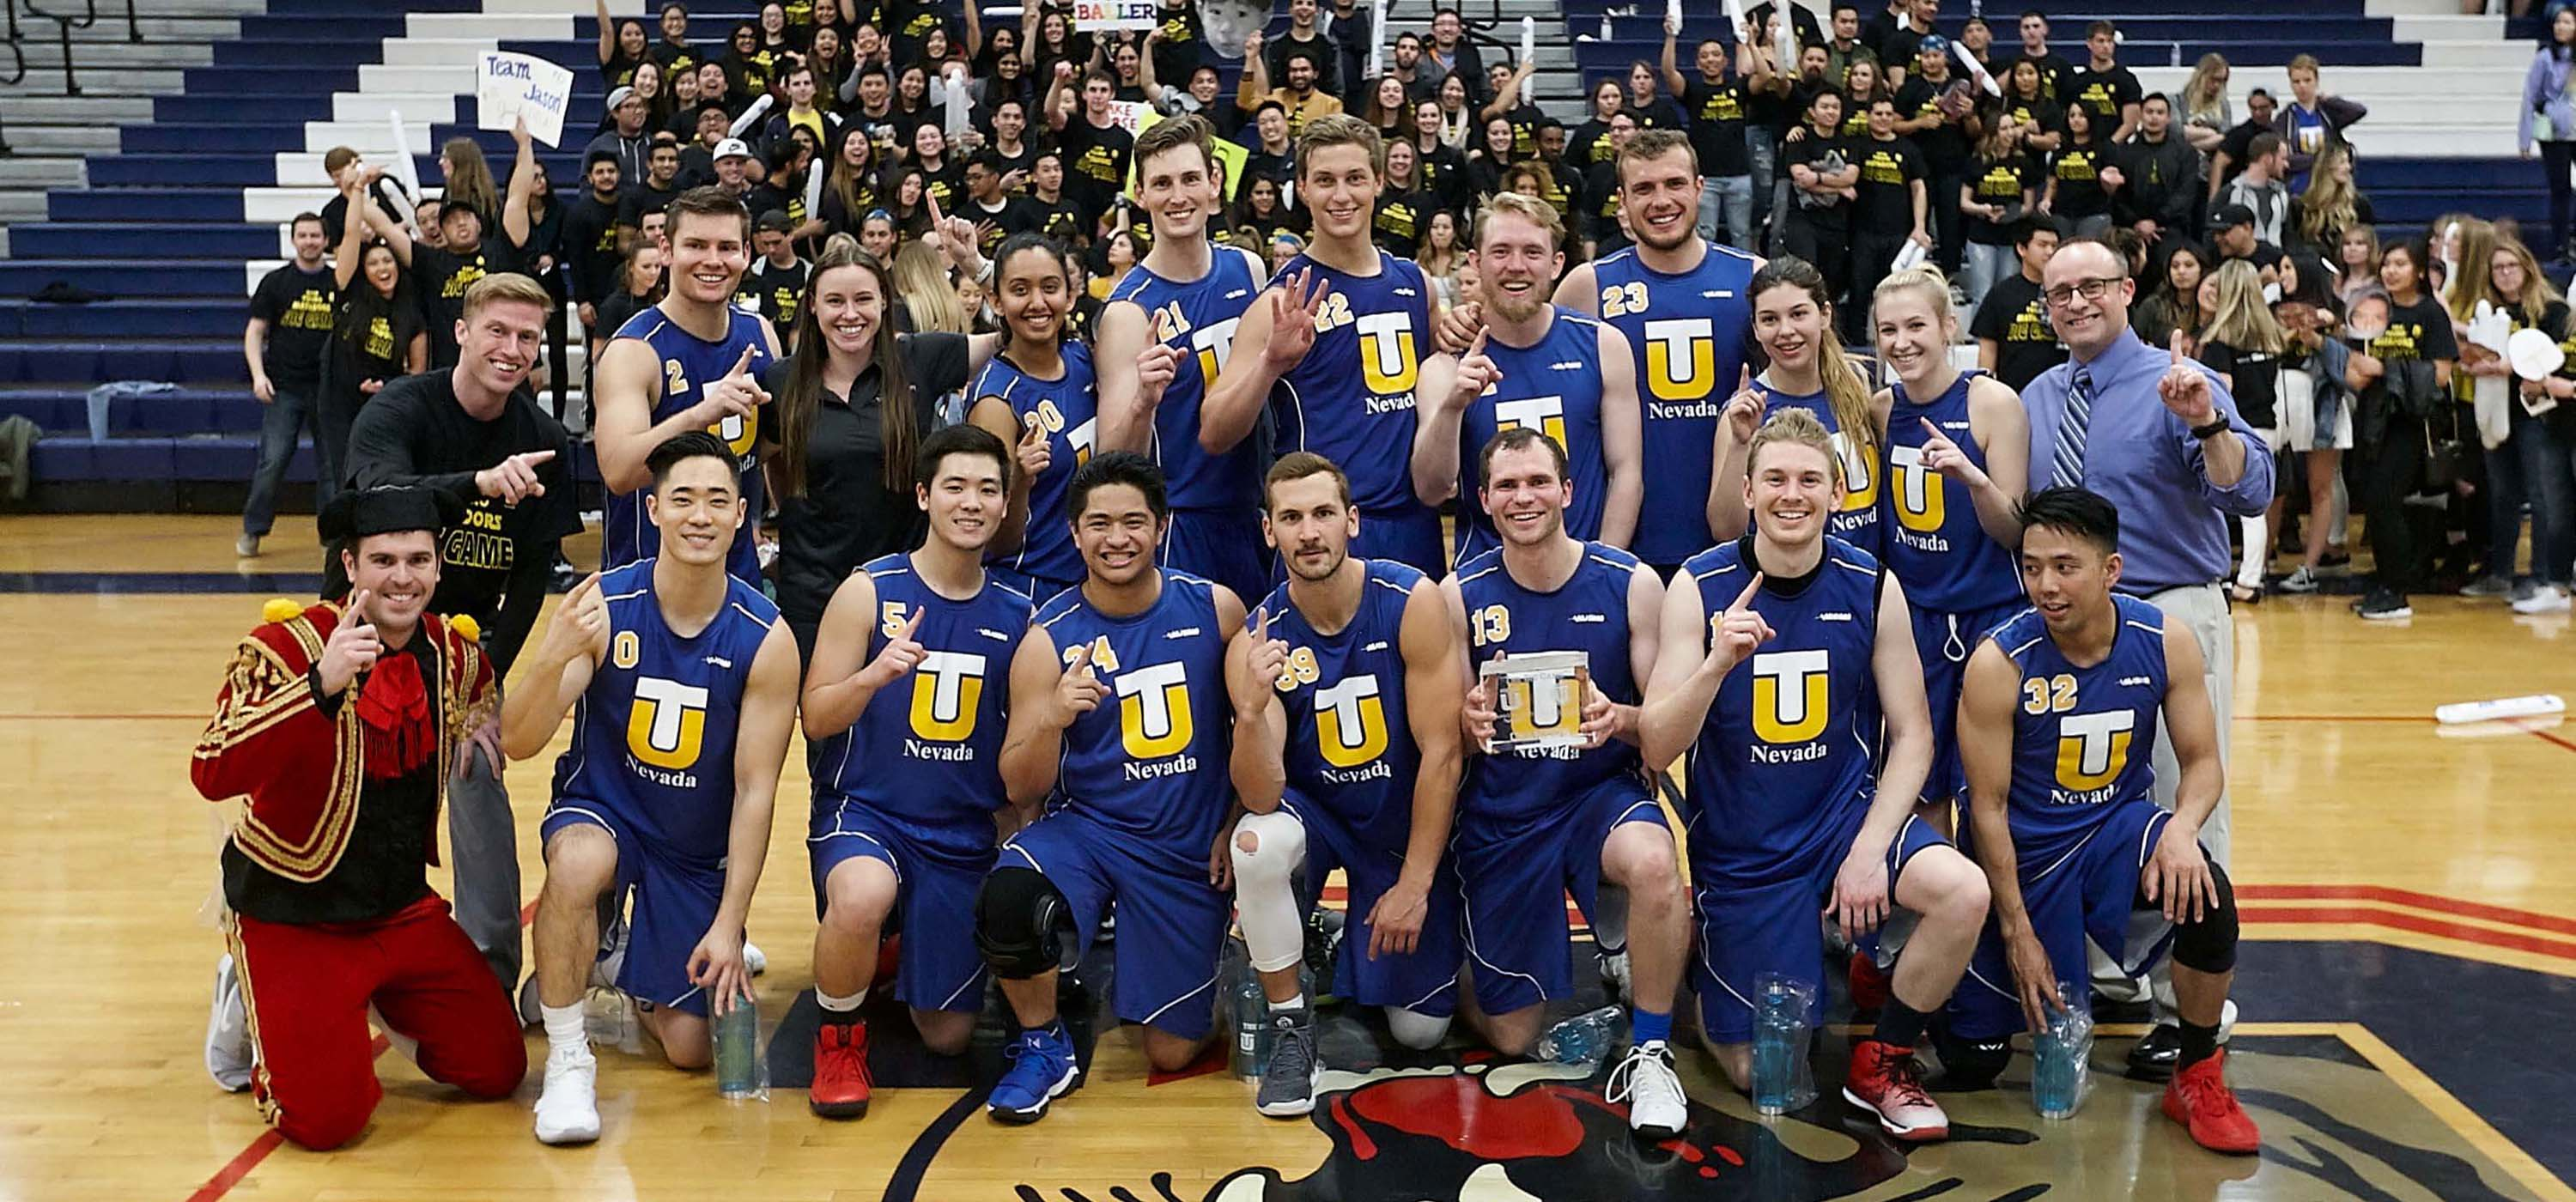 The Touro Nevada Matadors after beating the Touro California Bulls during \'The Big Game.\'